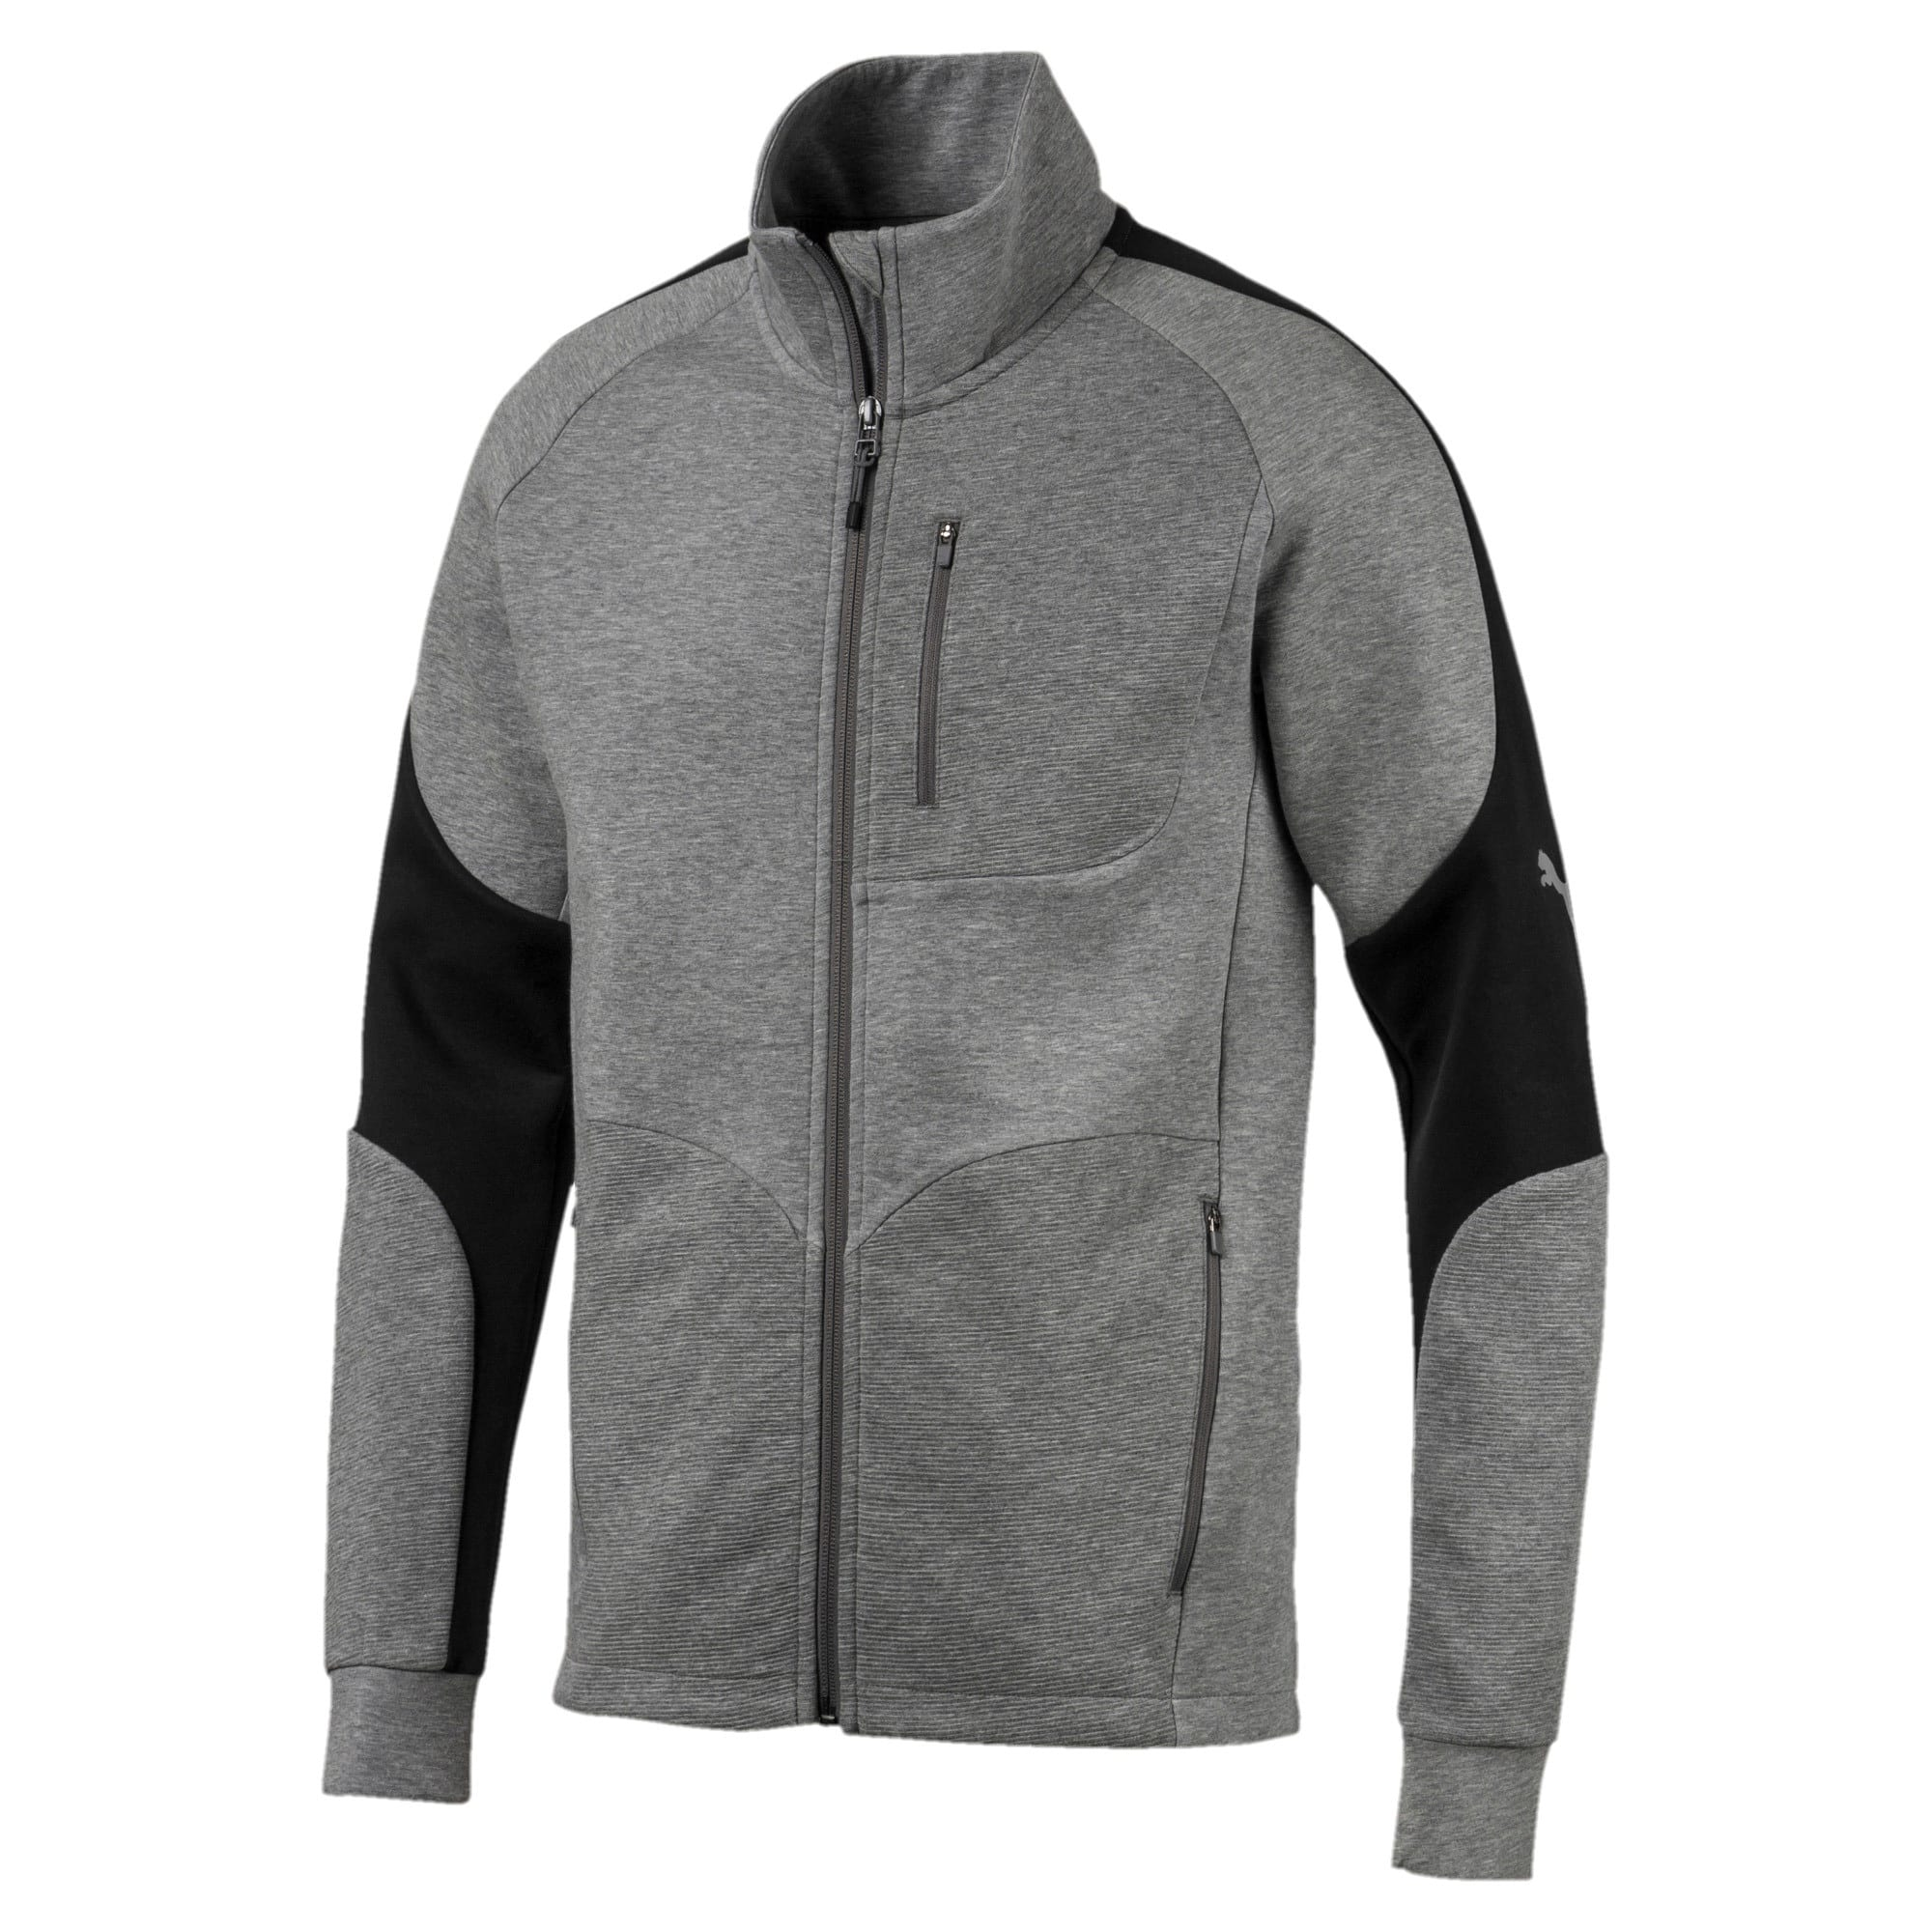 Miniatura 4 de Chaqueta Evostripe para hombre, Medium Gray Heather, mediano